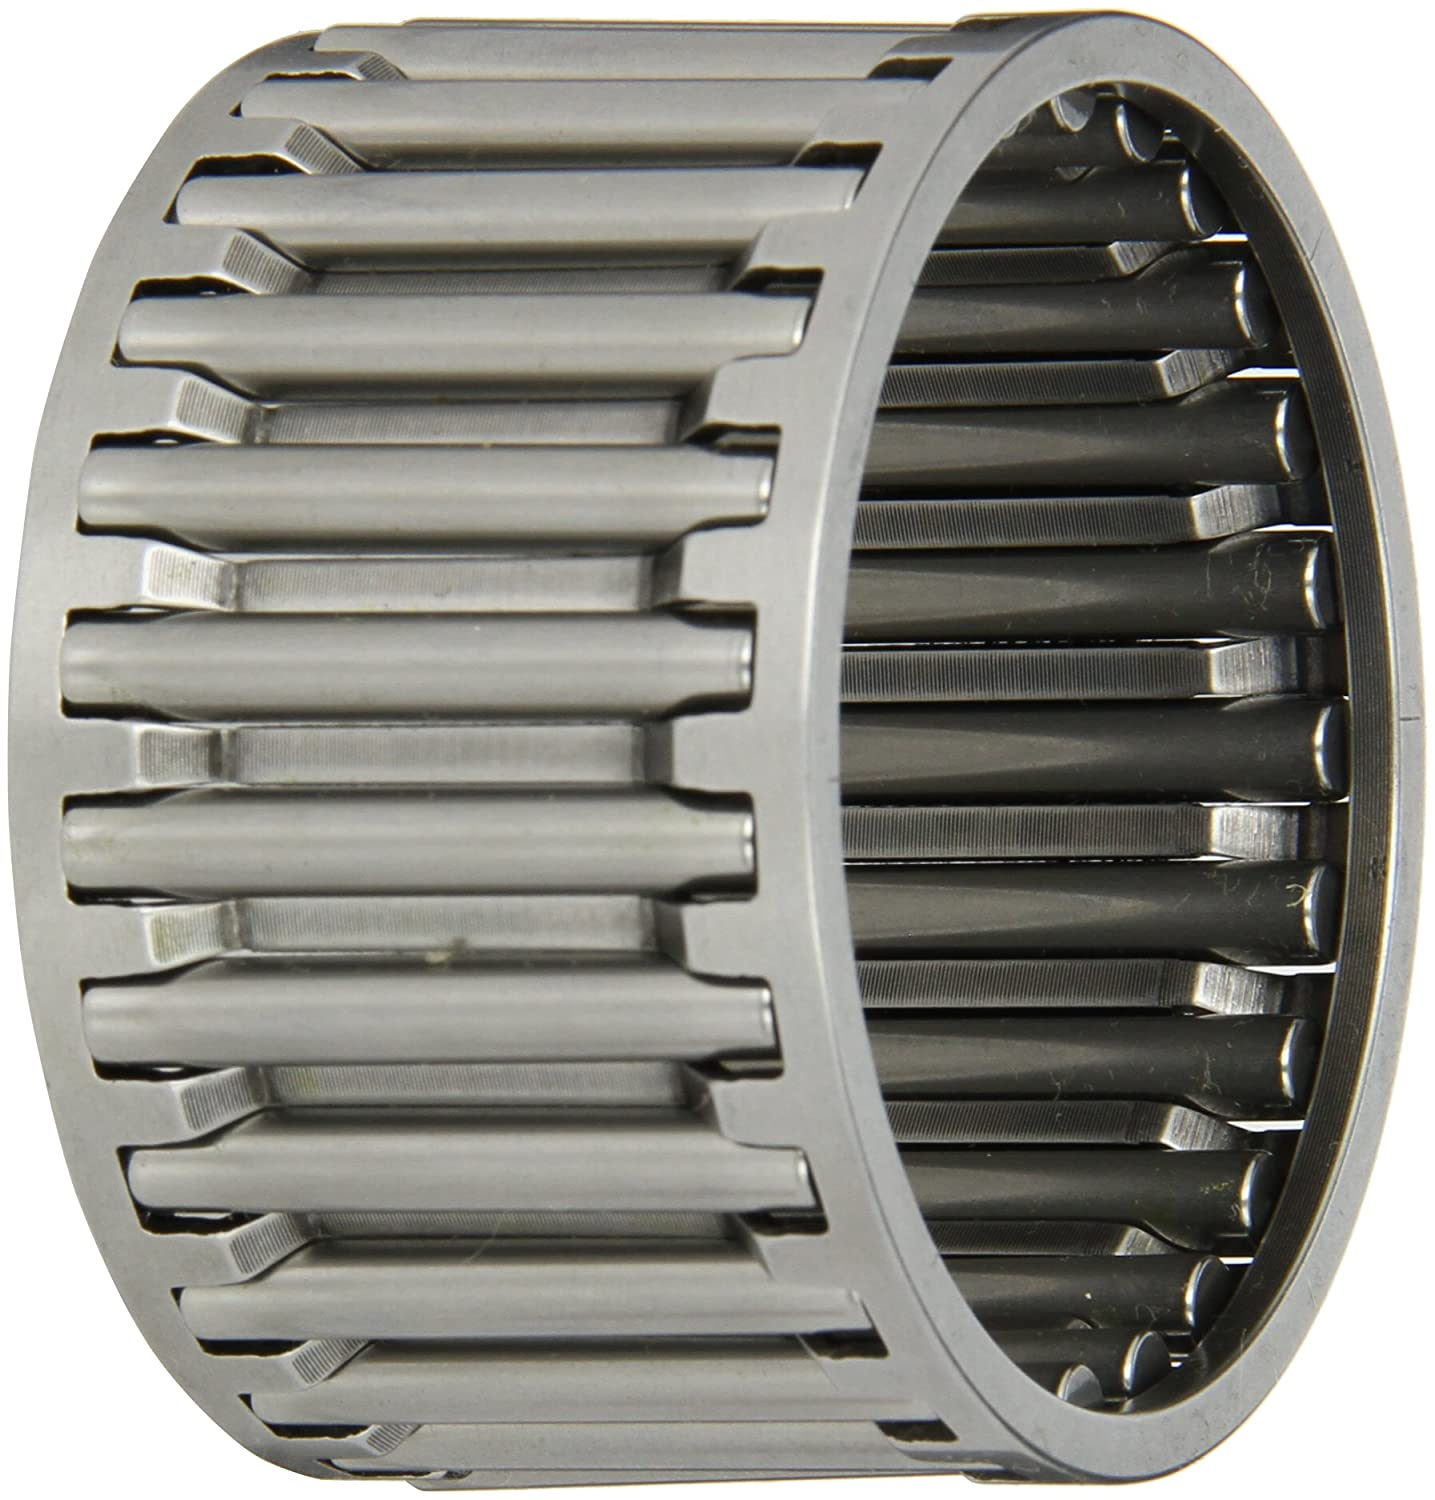 30 Coupling Outer Diameter:20 VXB Brand Japan MJC-20CS-RD 6.35mm to 5//16 inch Jaw-Type Flexible Coupling Coupling Bore 2 Diameter:5//16 inch Coupling Length